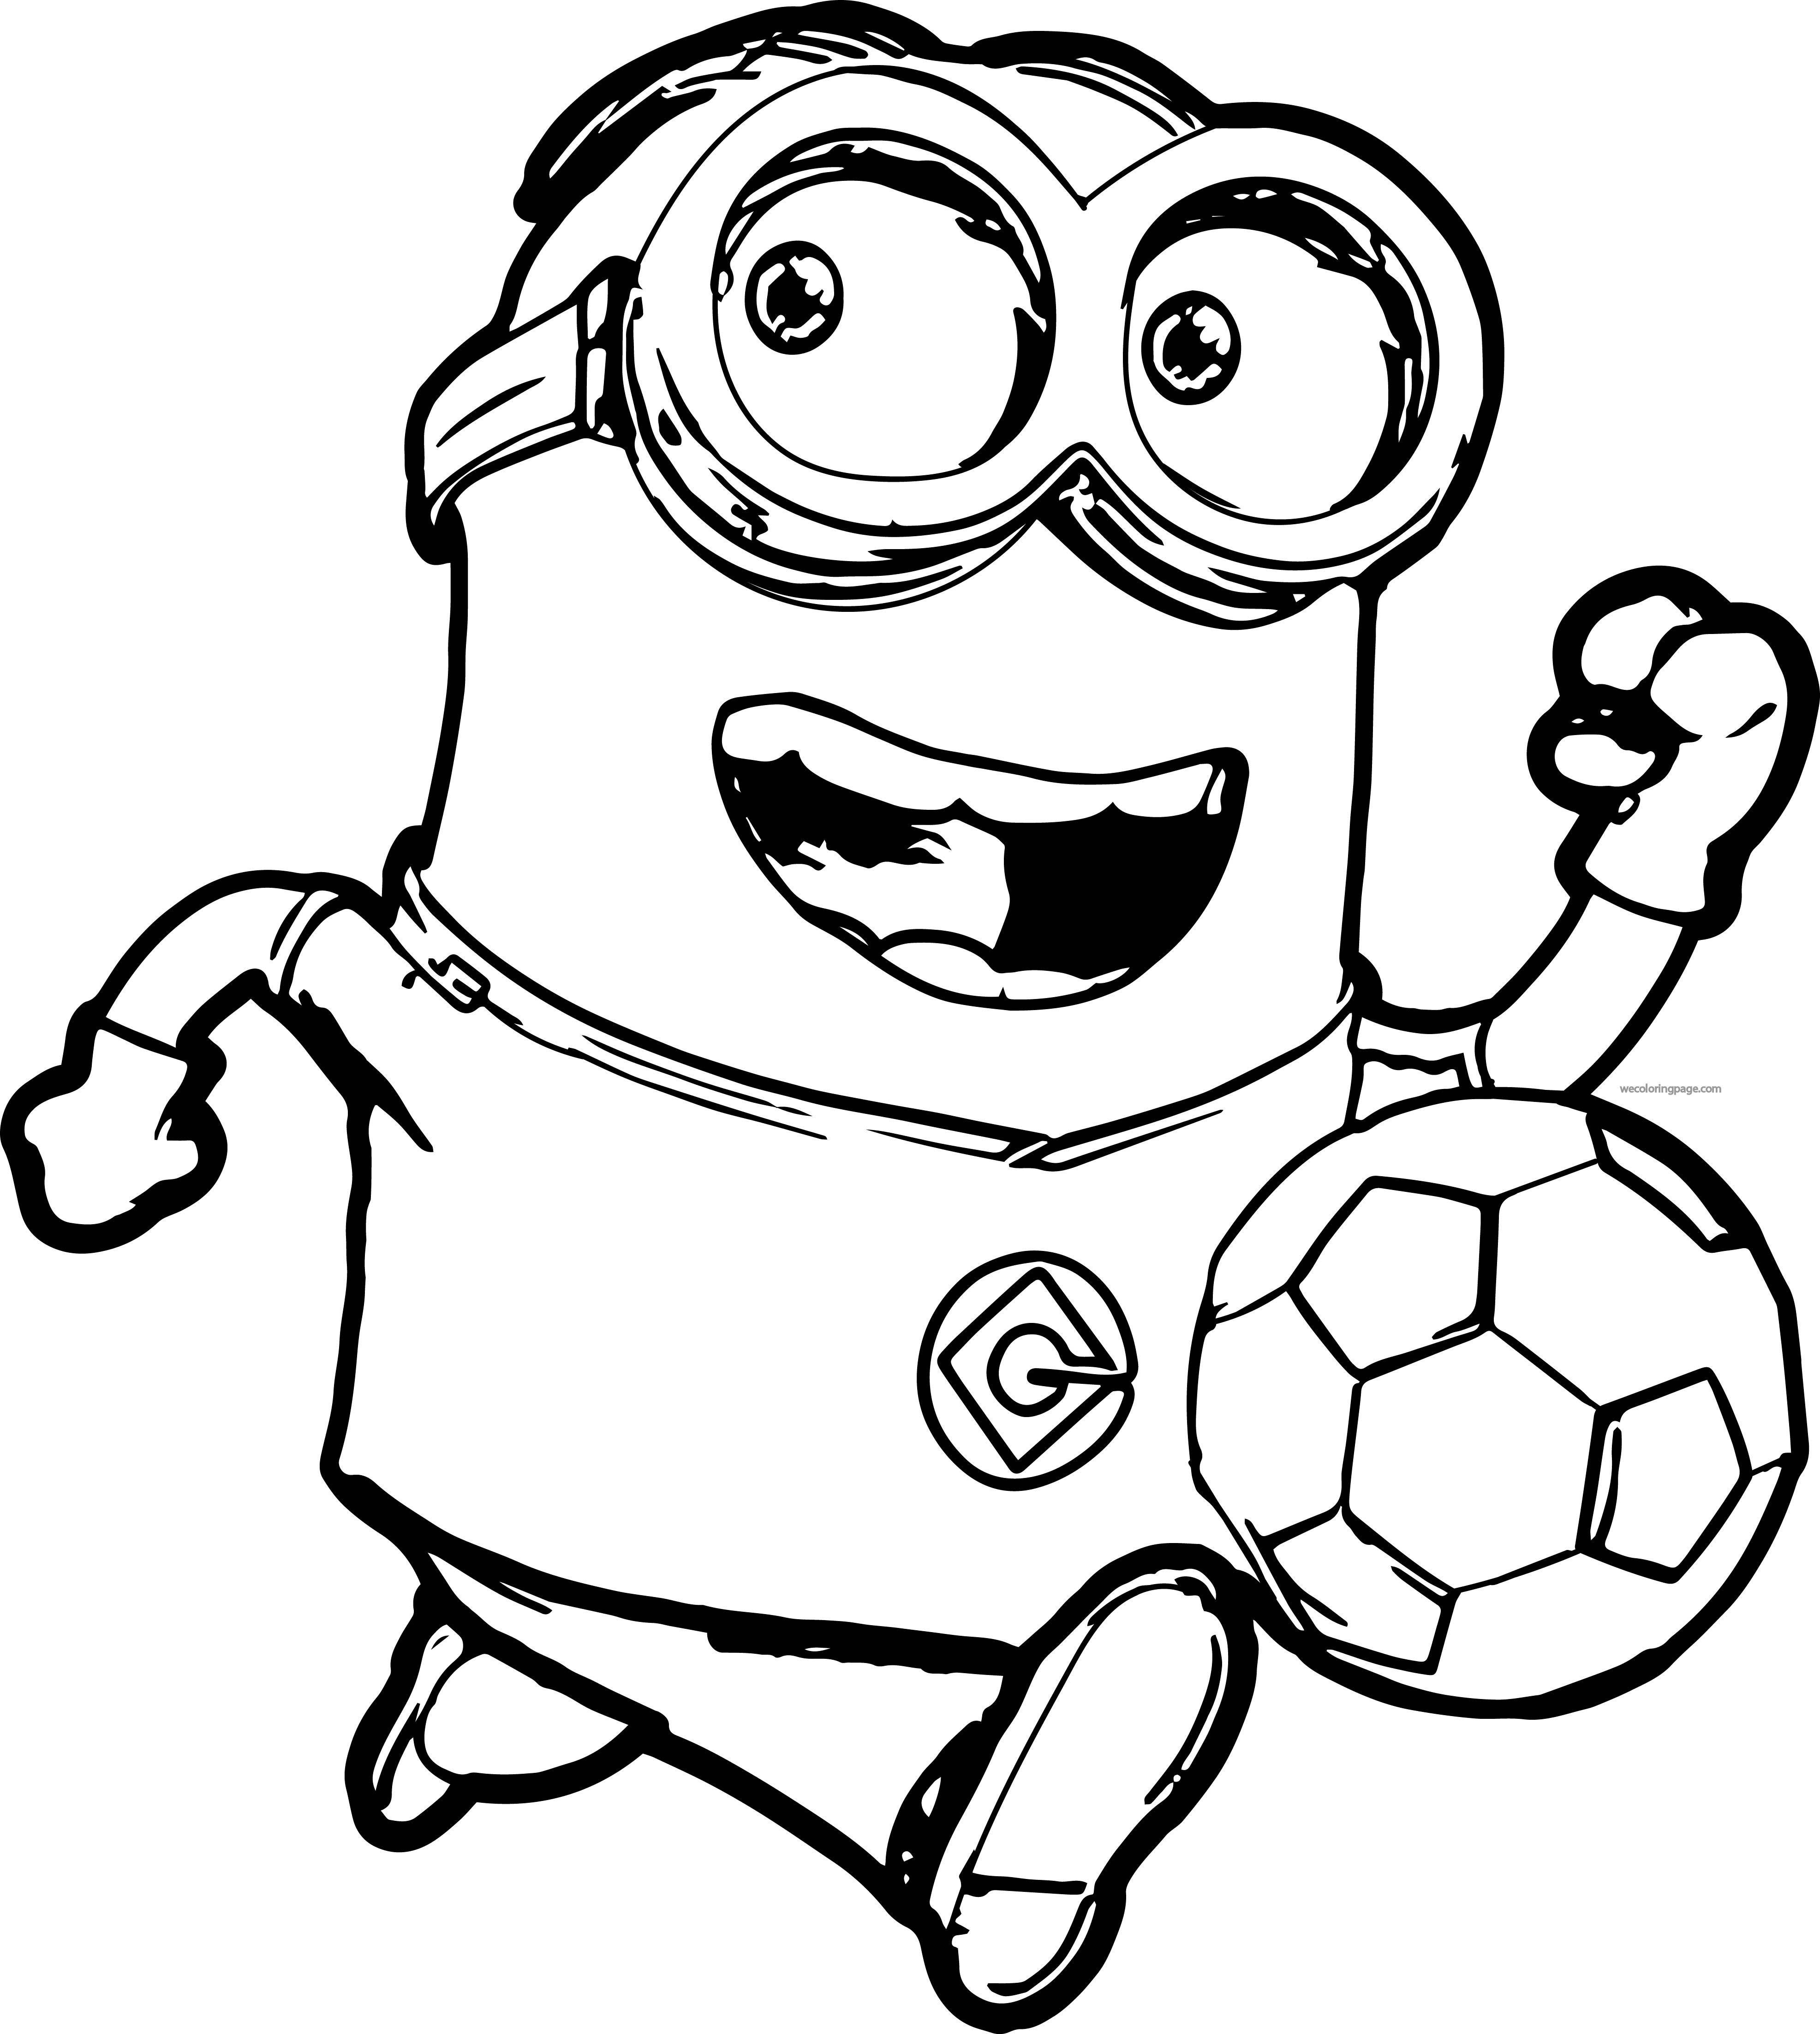 minion color sheets to print minion coloring pages from despicable me for free sheets minion color